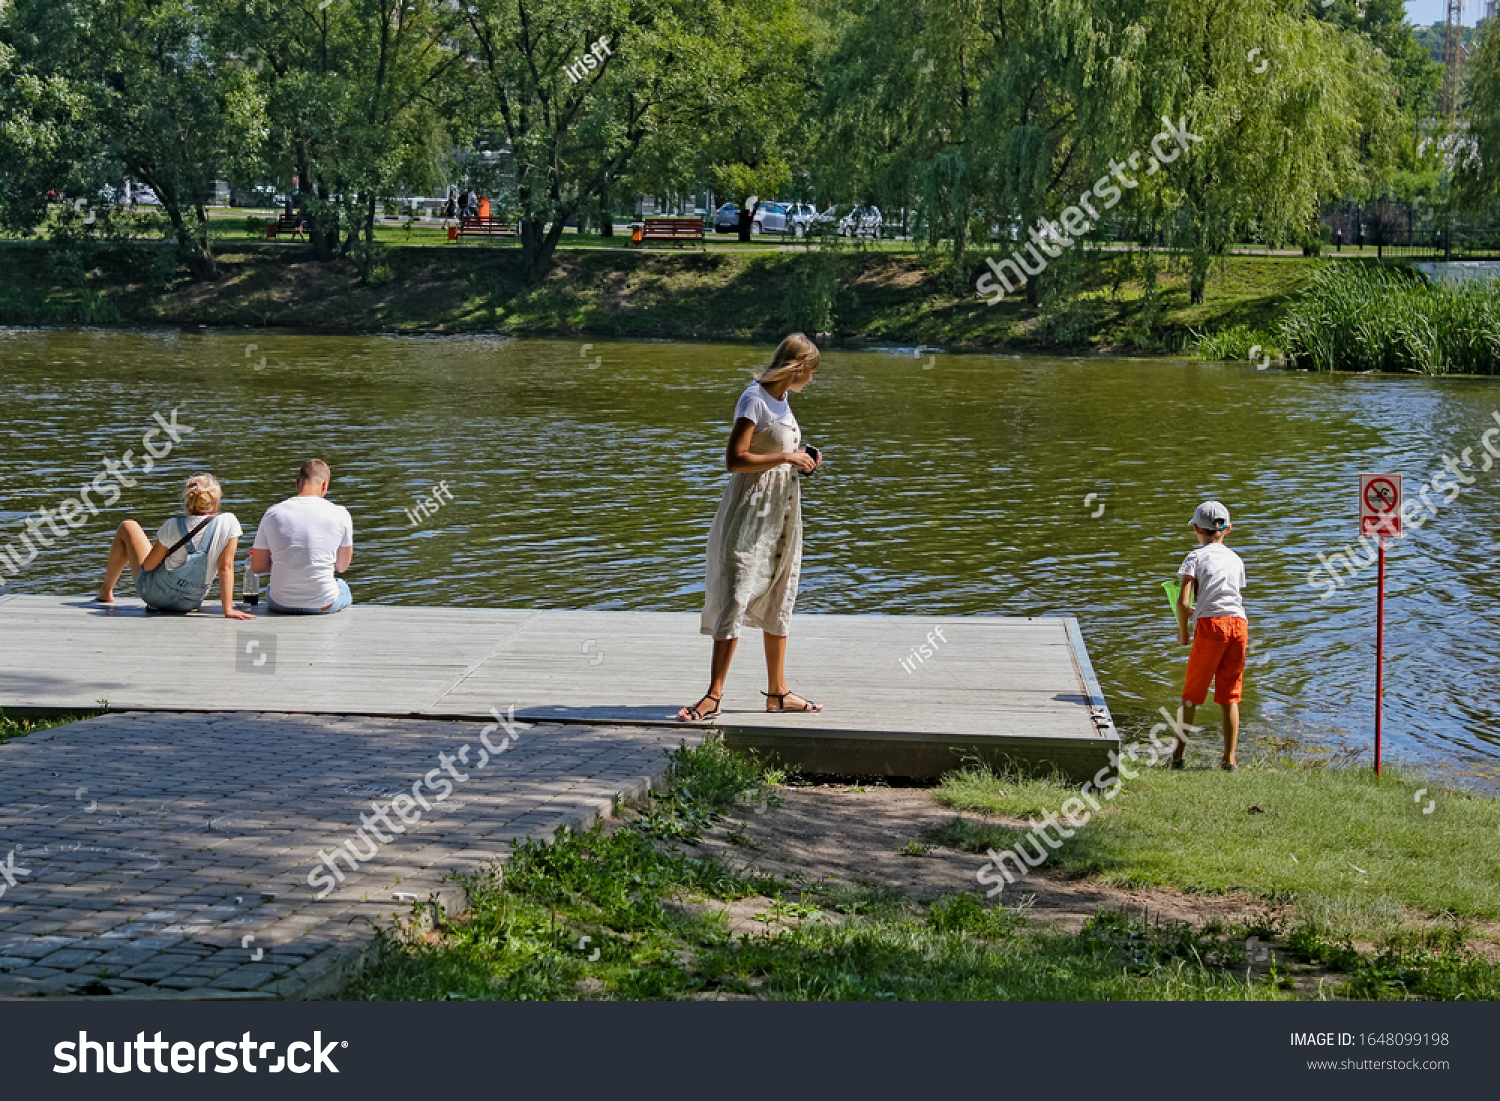 stock-photo-people-on-a-wooden-bridge-by